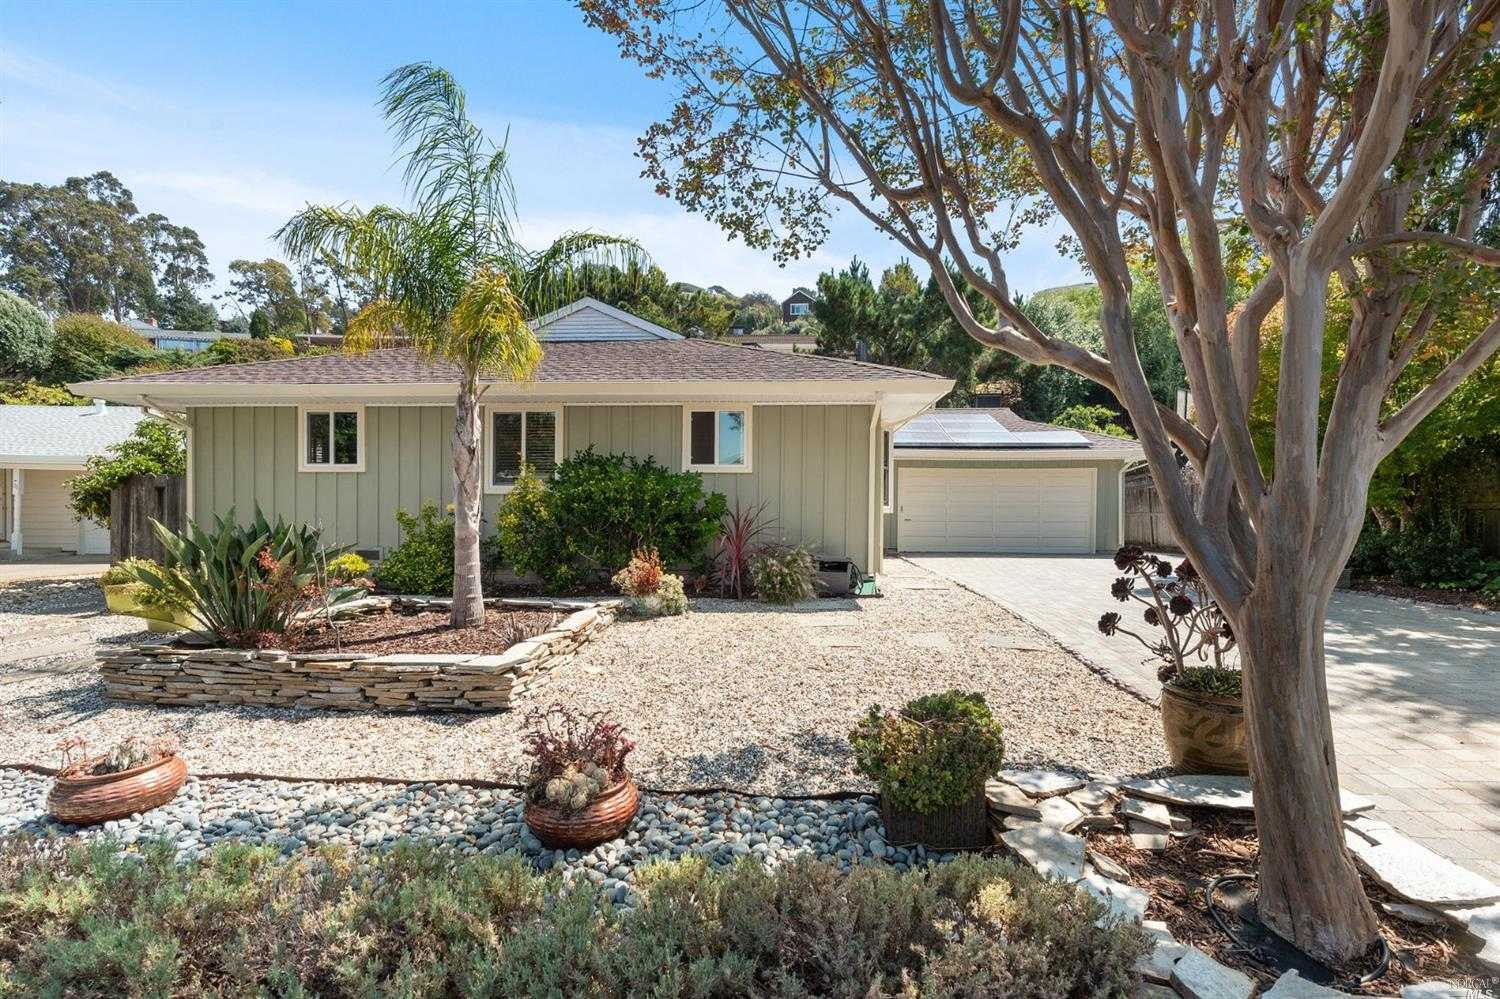 $1,875,000 - 4Br/2Ba -  for Sale in Corte Madera